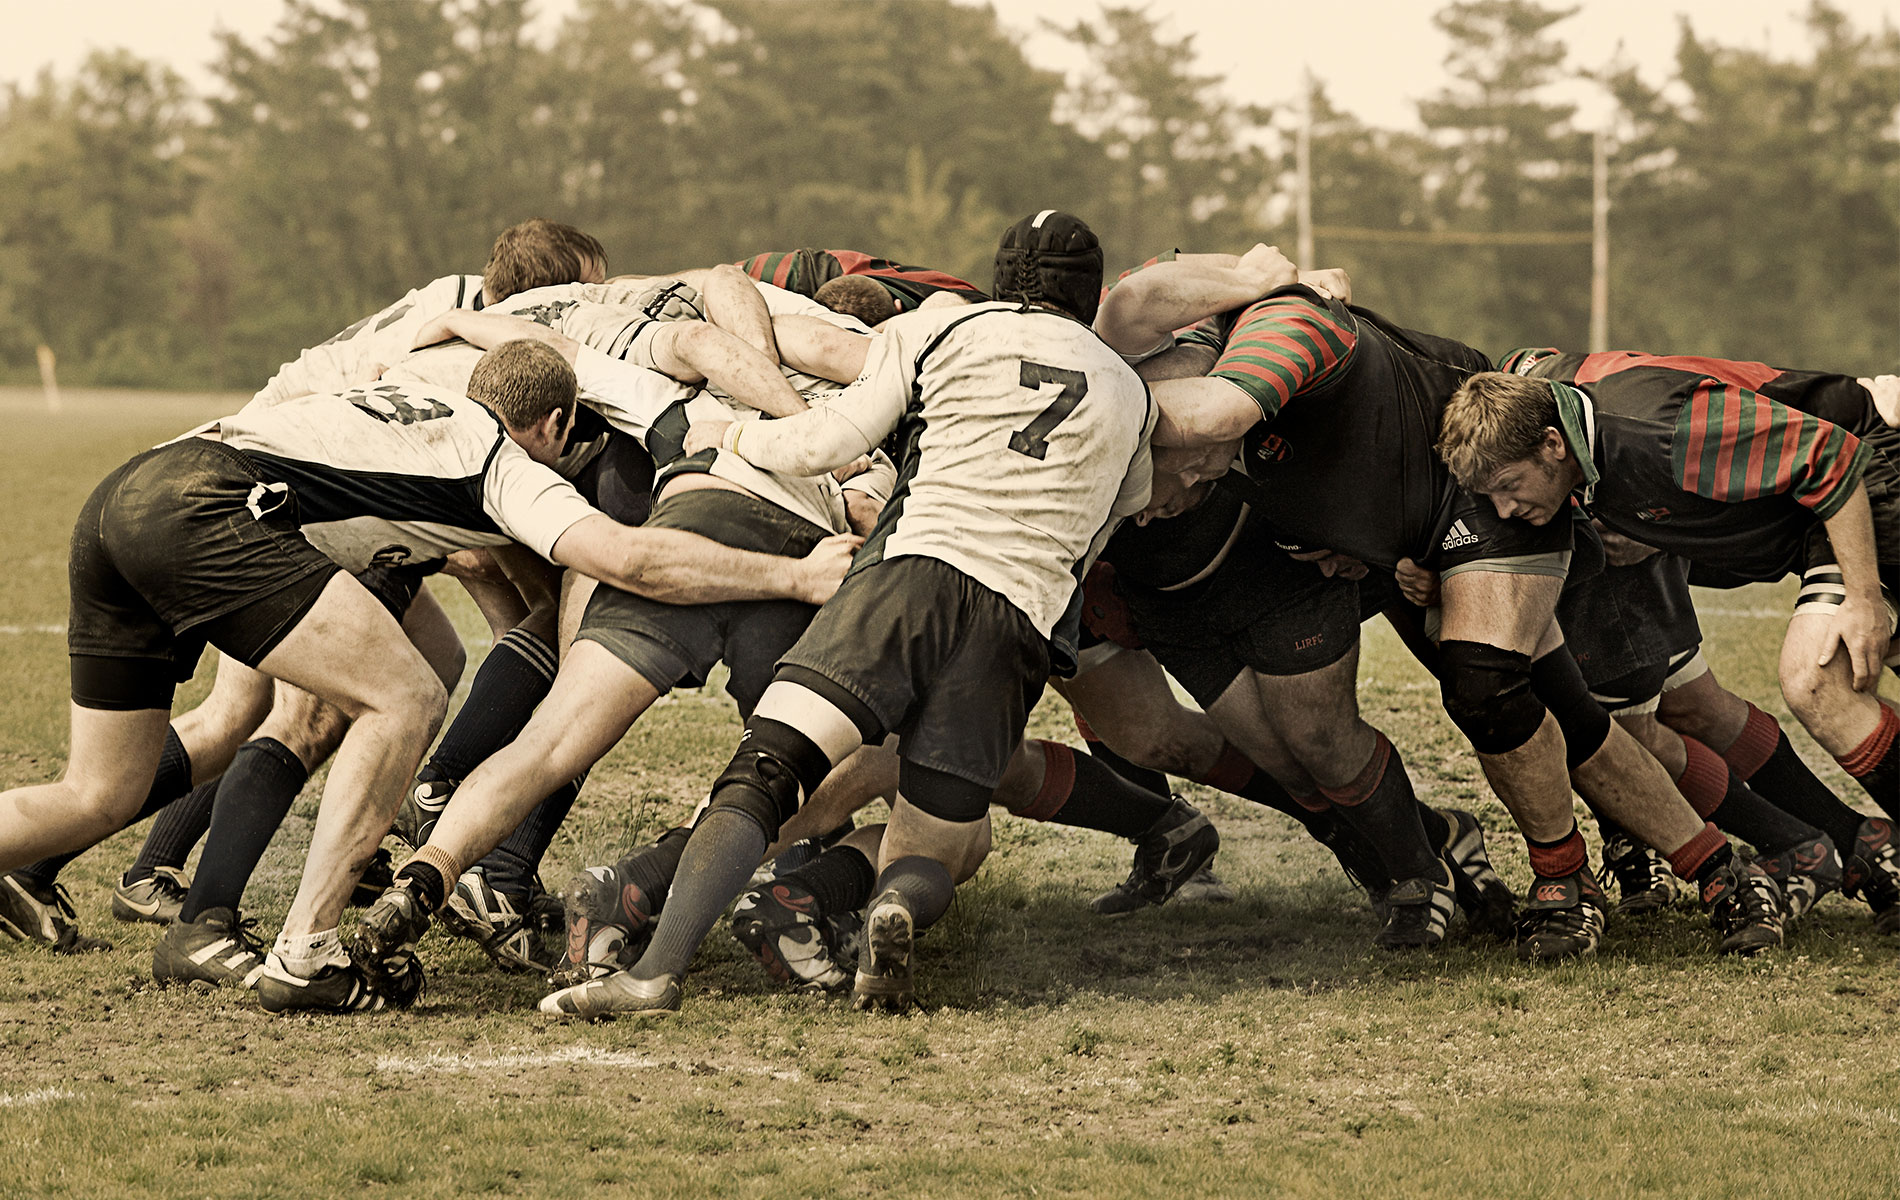 SERIES_13_RUGBY_041er